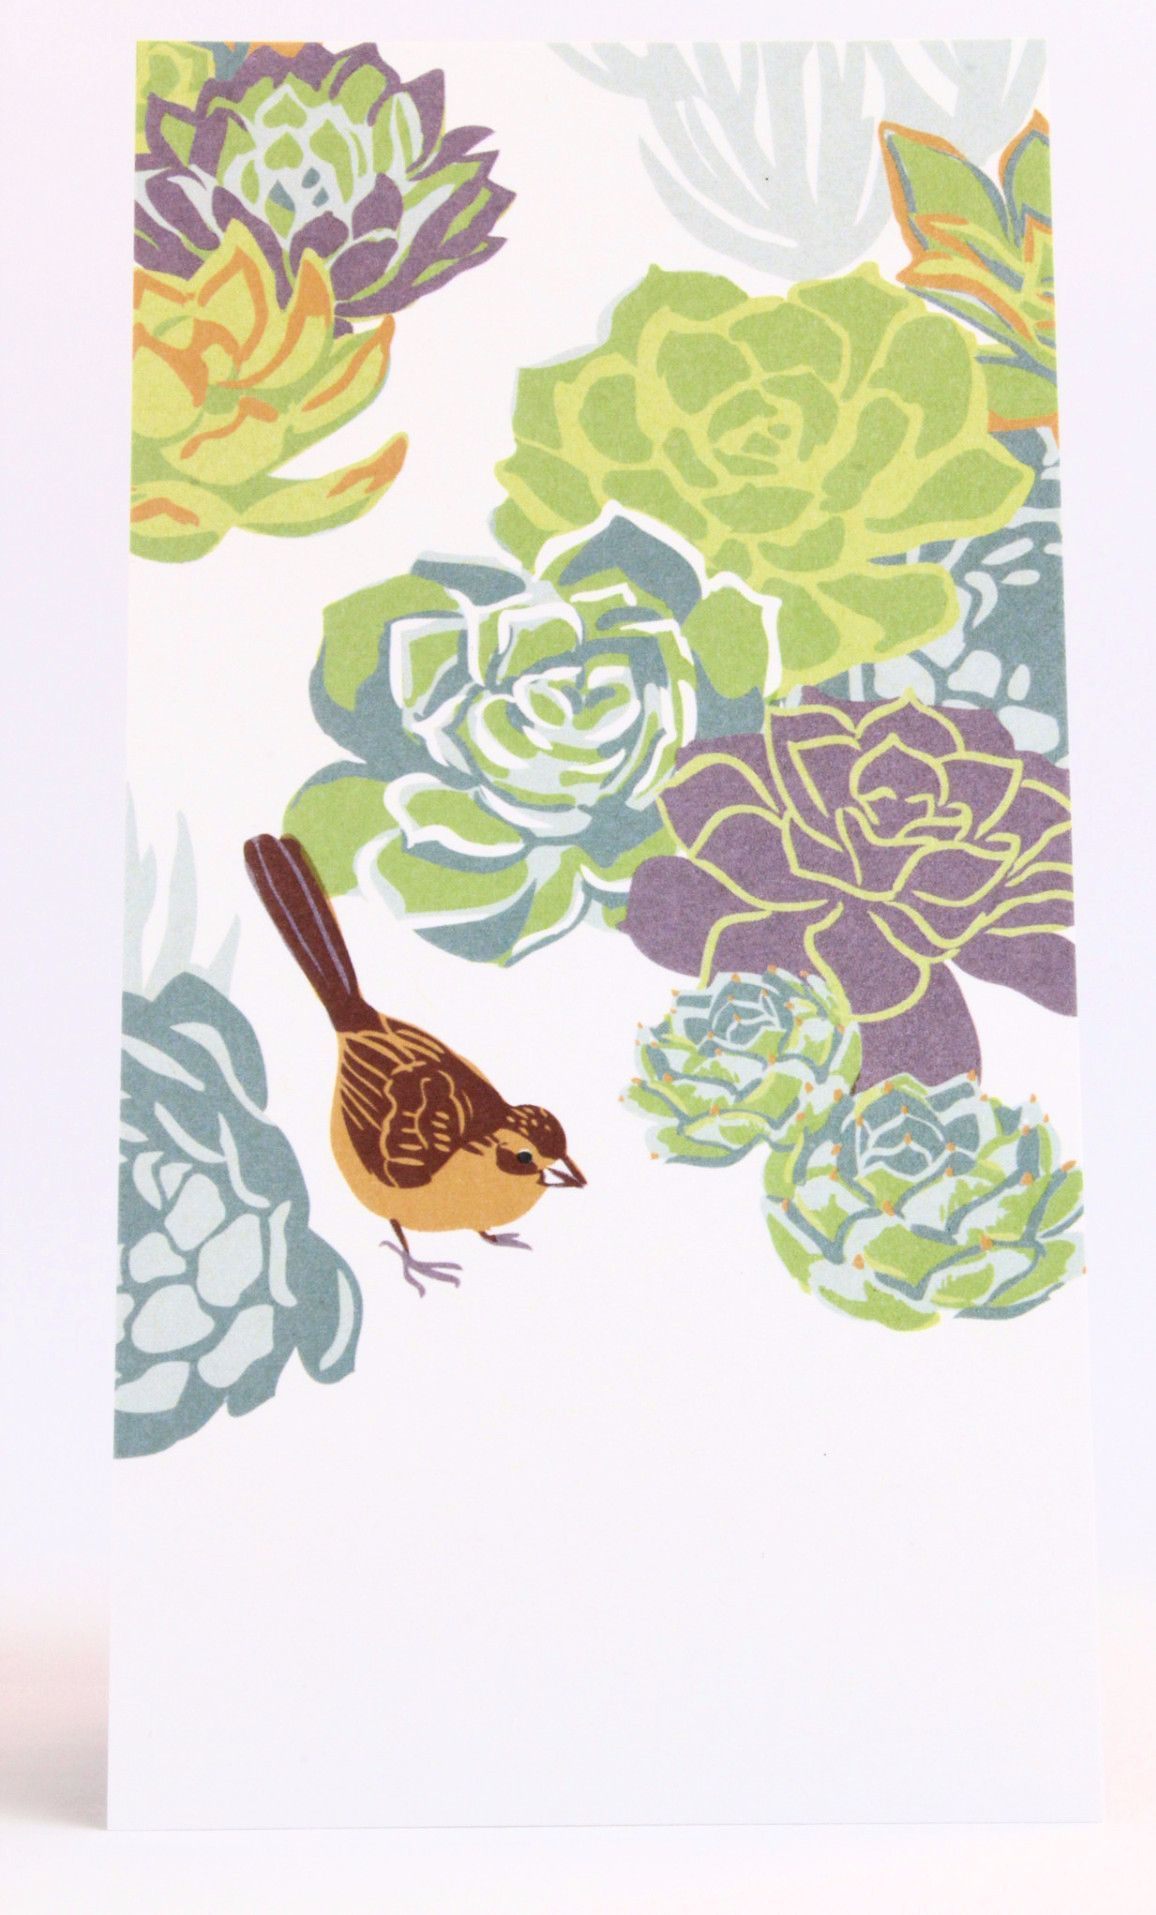 Succulent towhee greeting cards are simple yet sophisticated to succulent towhee greeting cards are simple yet sophisticated to help you keep in touch in style printed on 100 wind powered recycled paper kristyandbryce Images